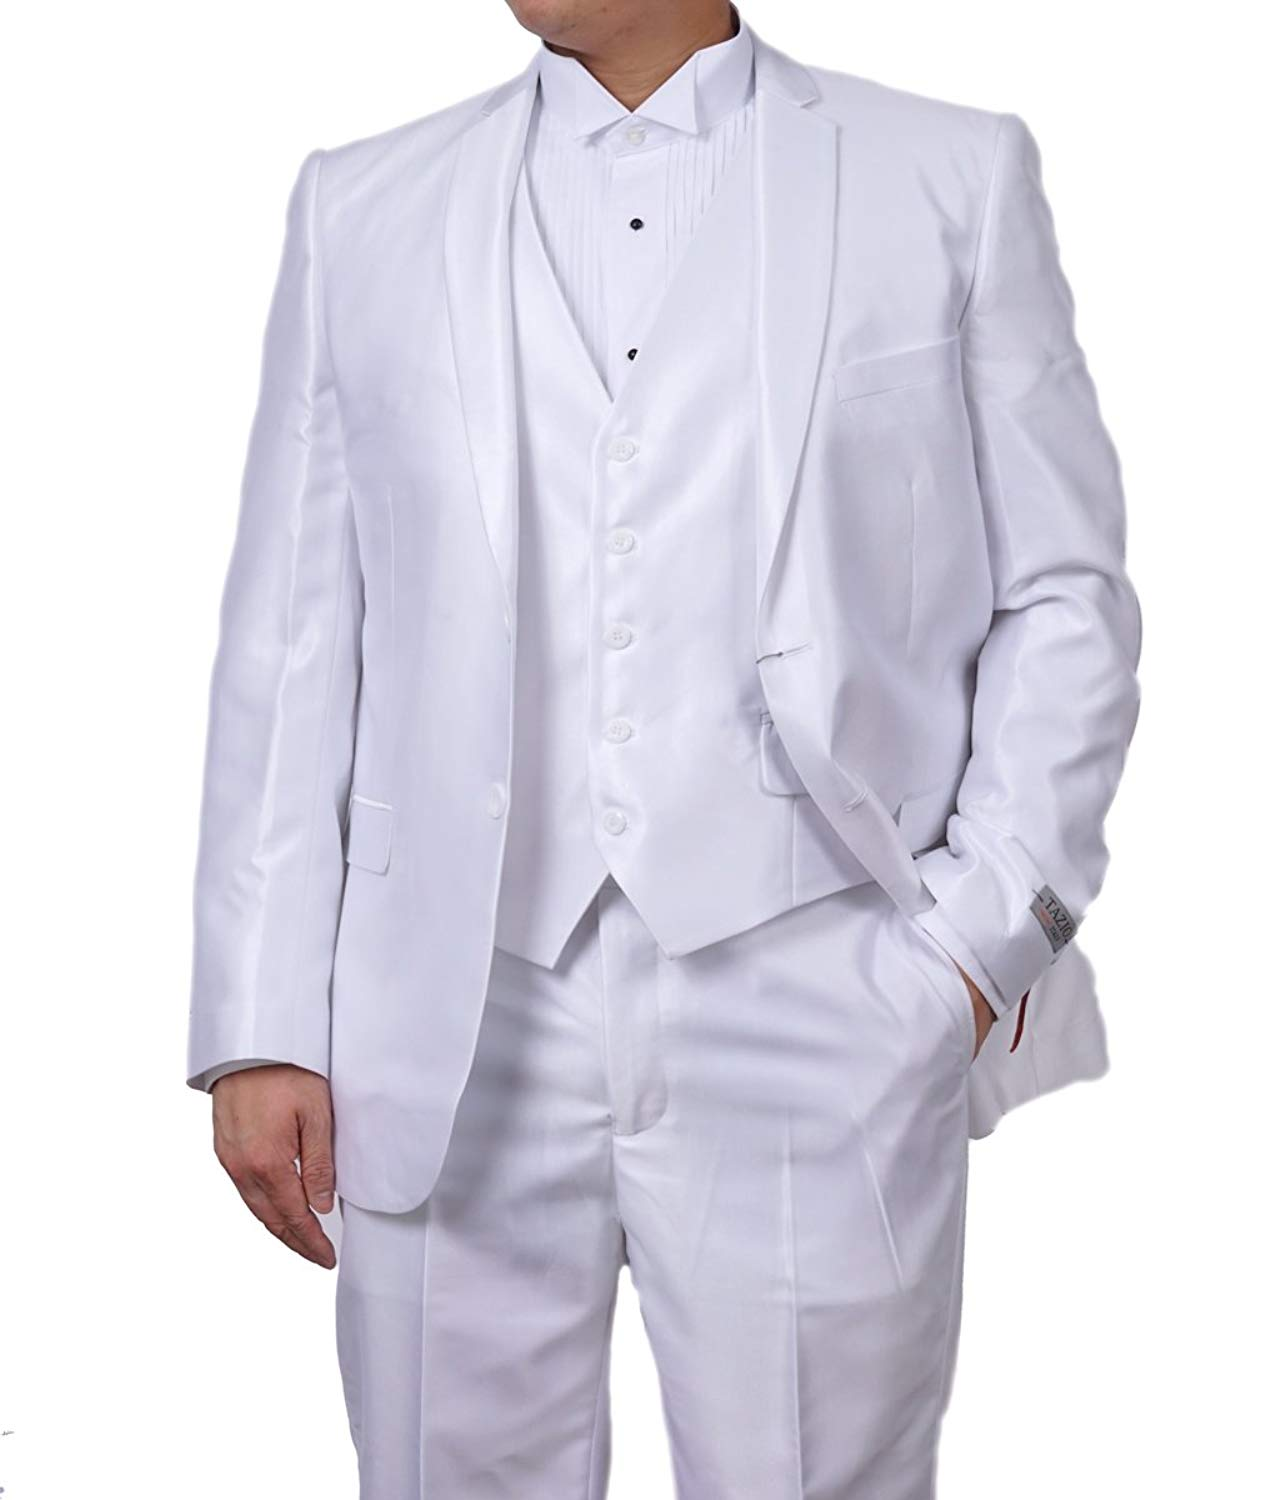 TAZIO New Mens 3 Pc (Jacket, Pants & Vest) Shiny White Sharkskin Slim Fit Dress Suit (40R)